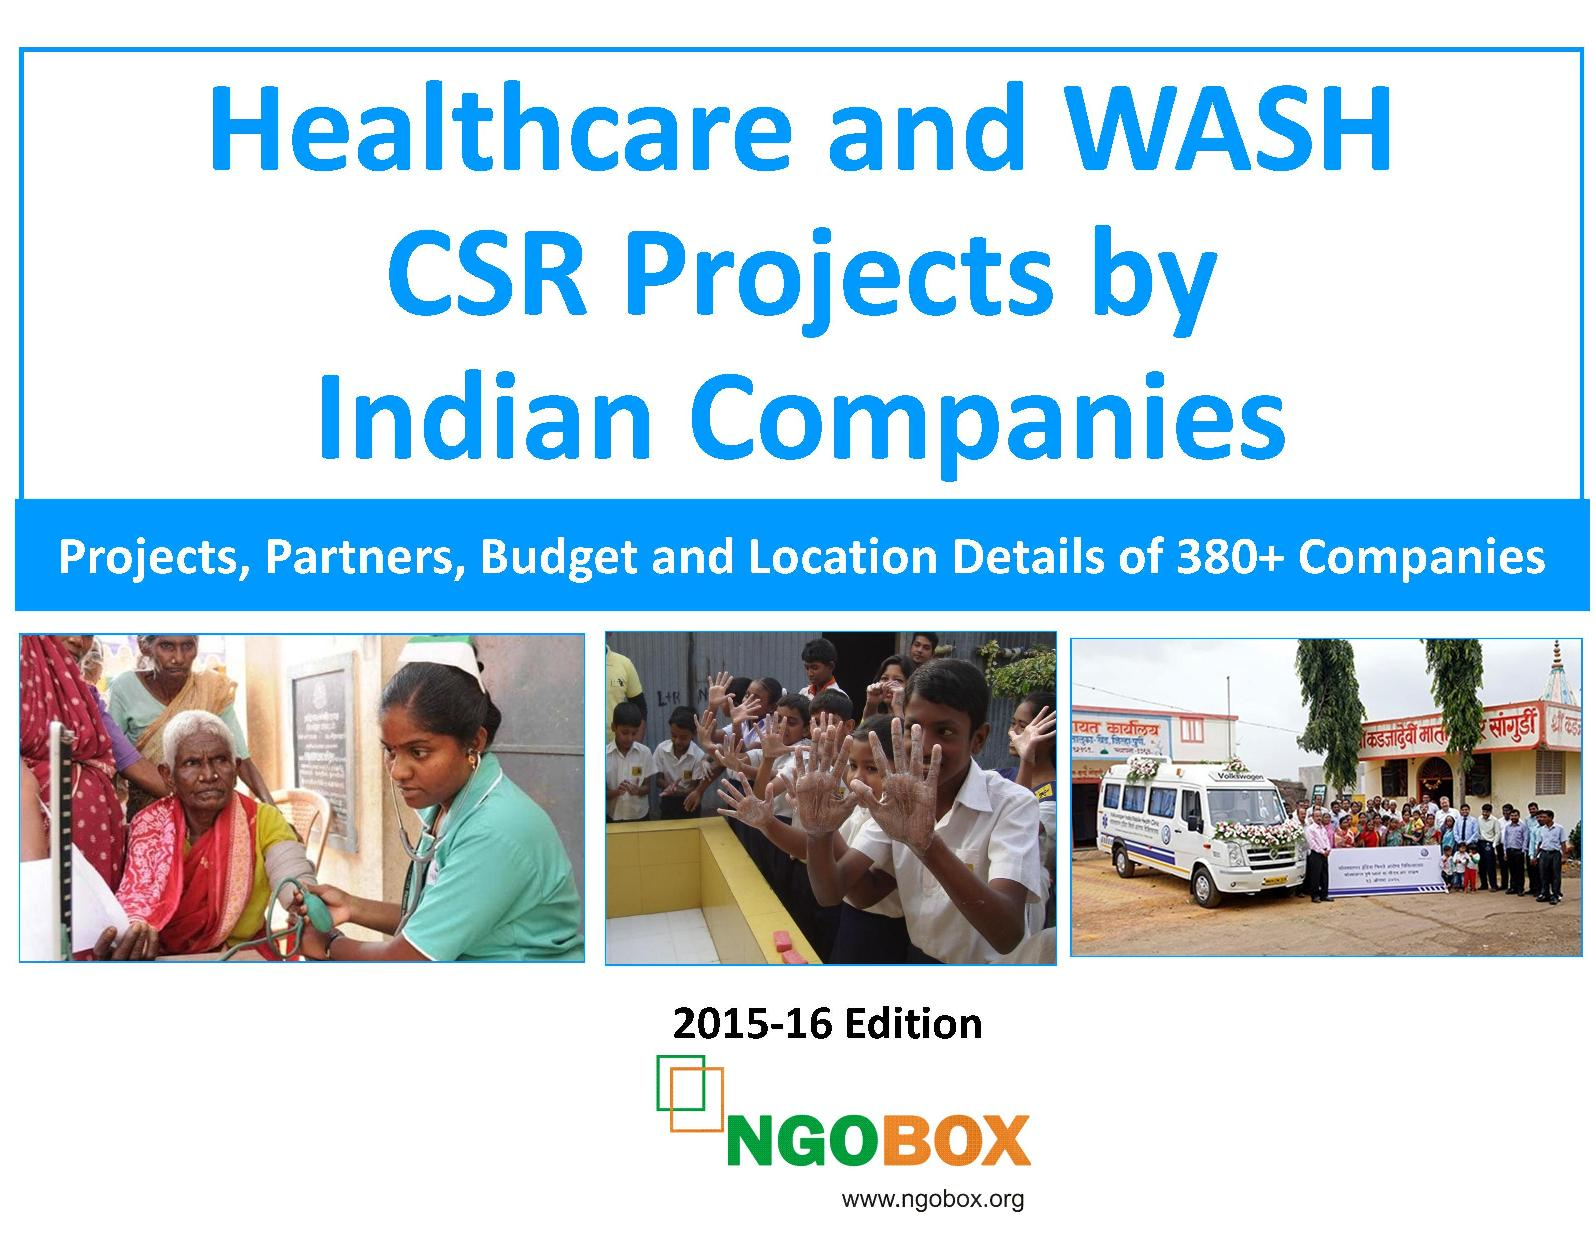 Healthcare and WASH CSR Projects by Indian Companies